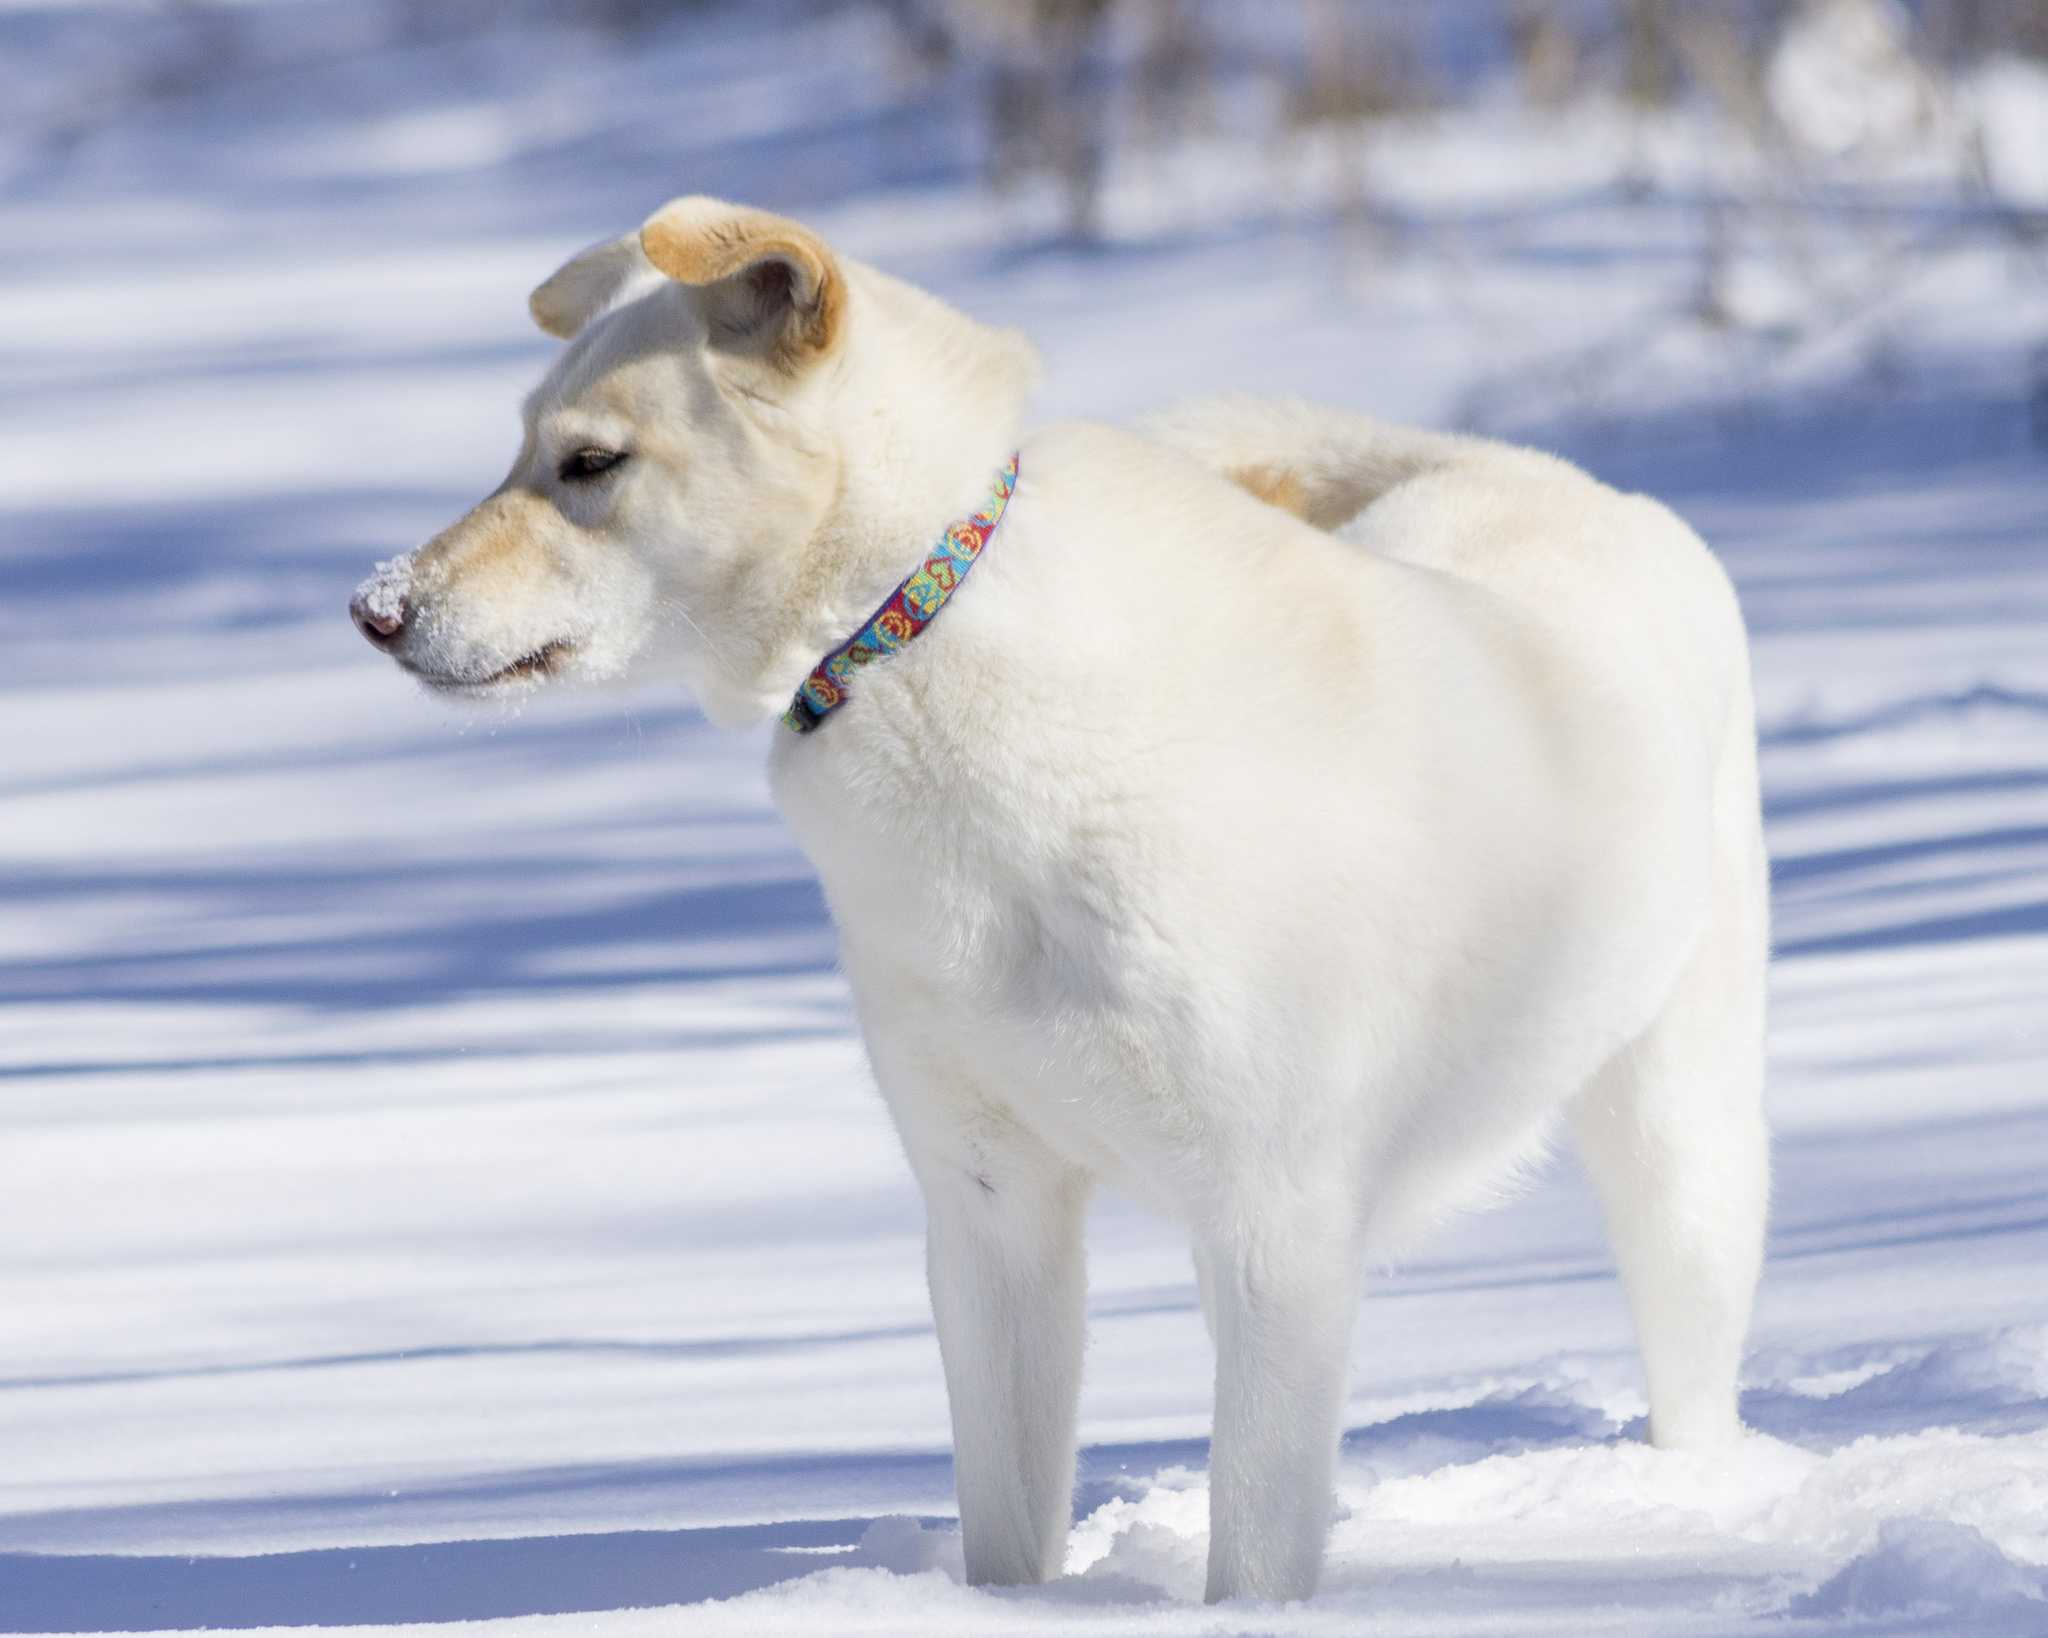 Tips for keeping your pet warm and safe during cold weather